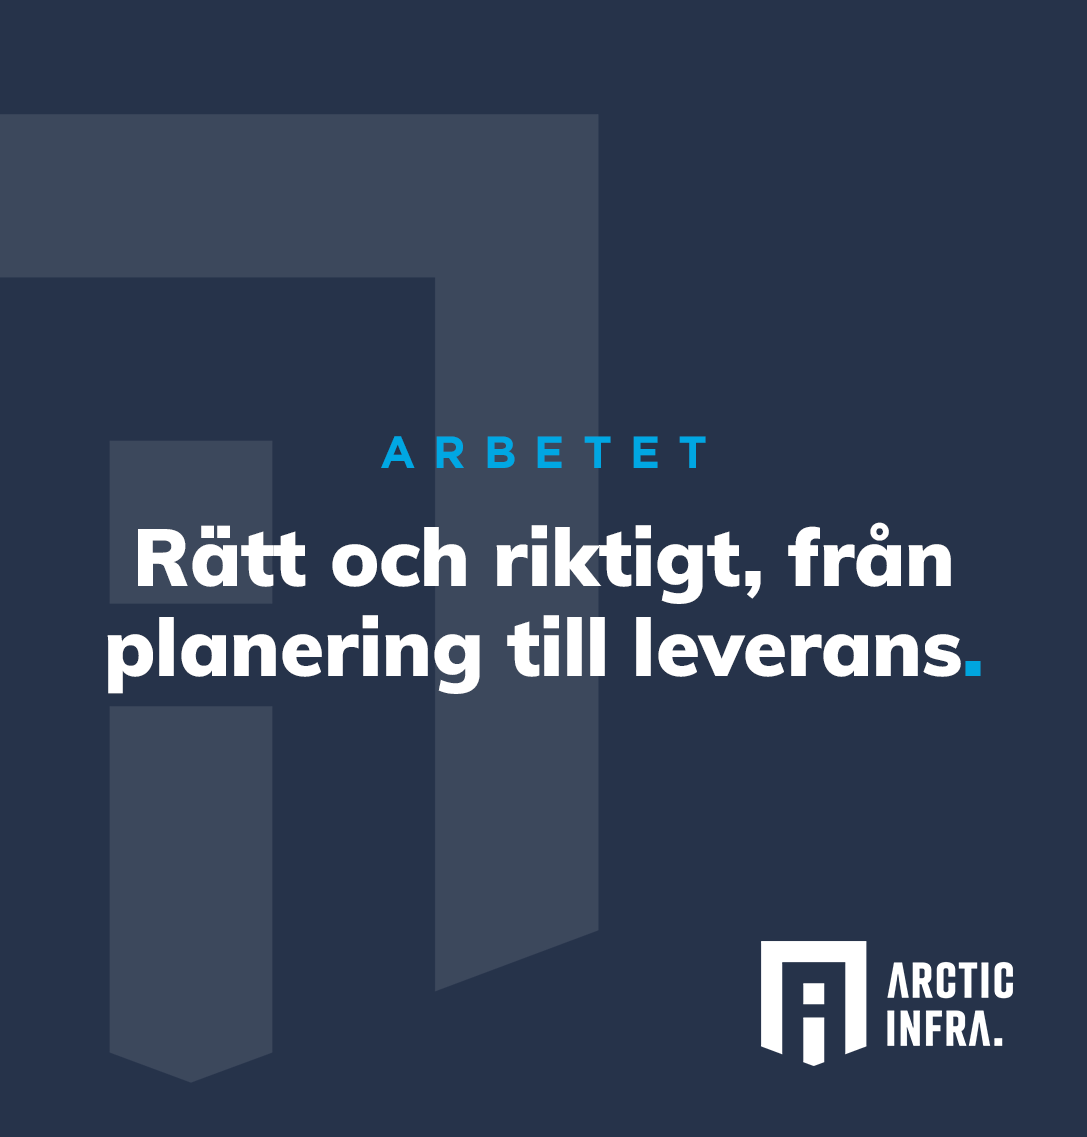 arcticinfra_arbetet01.png